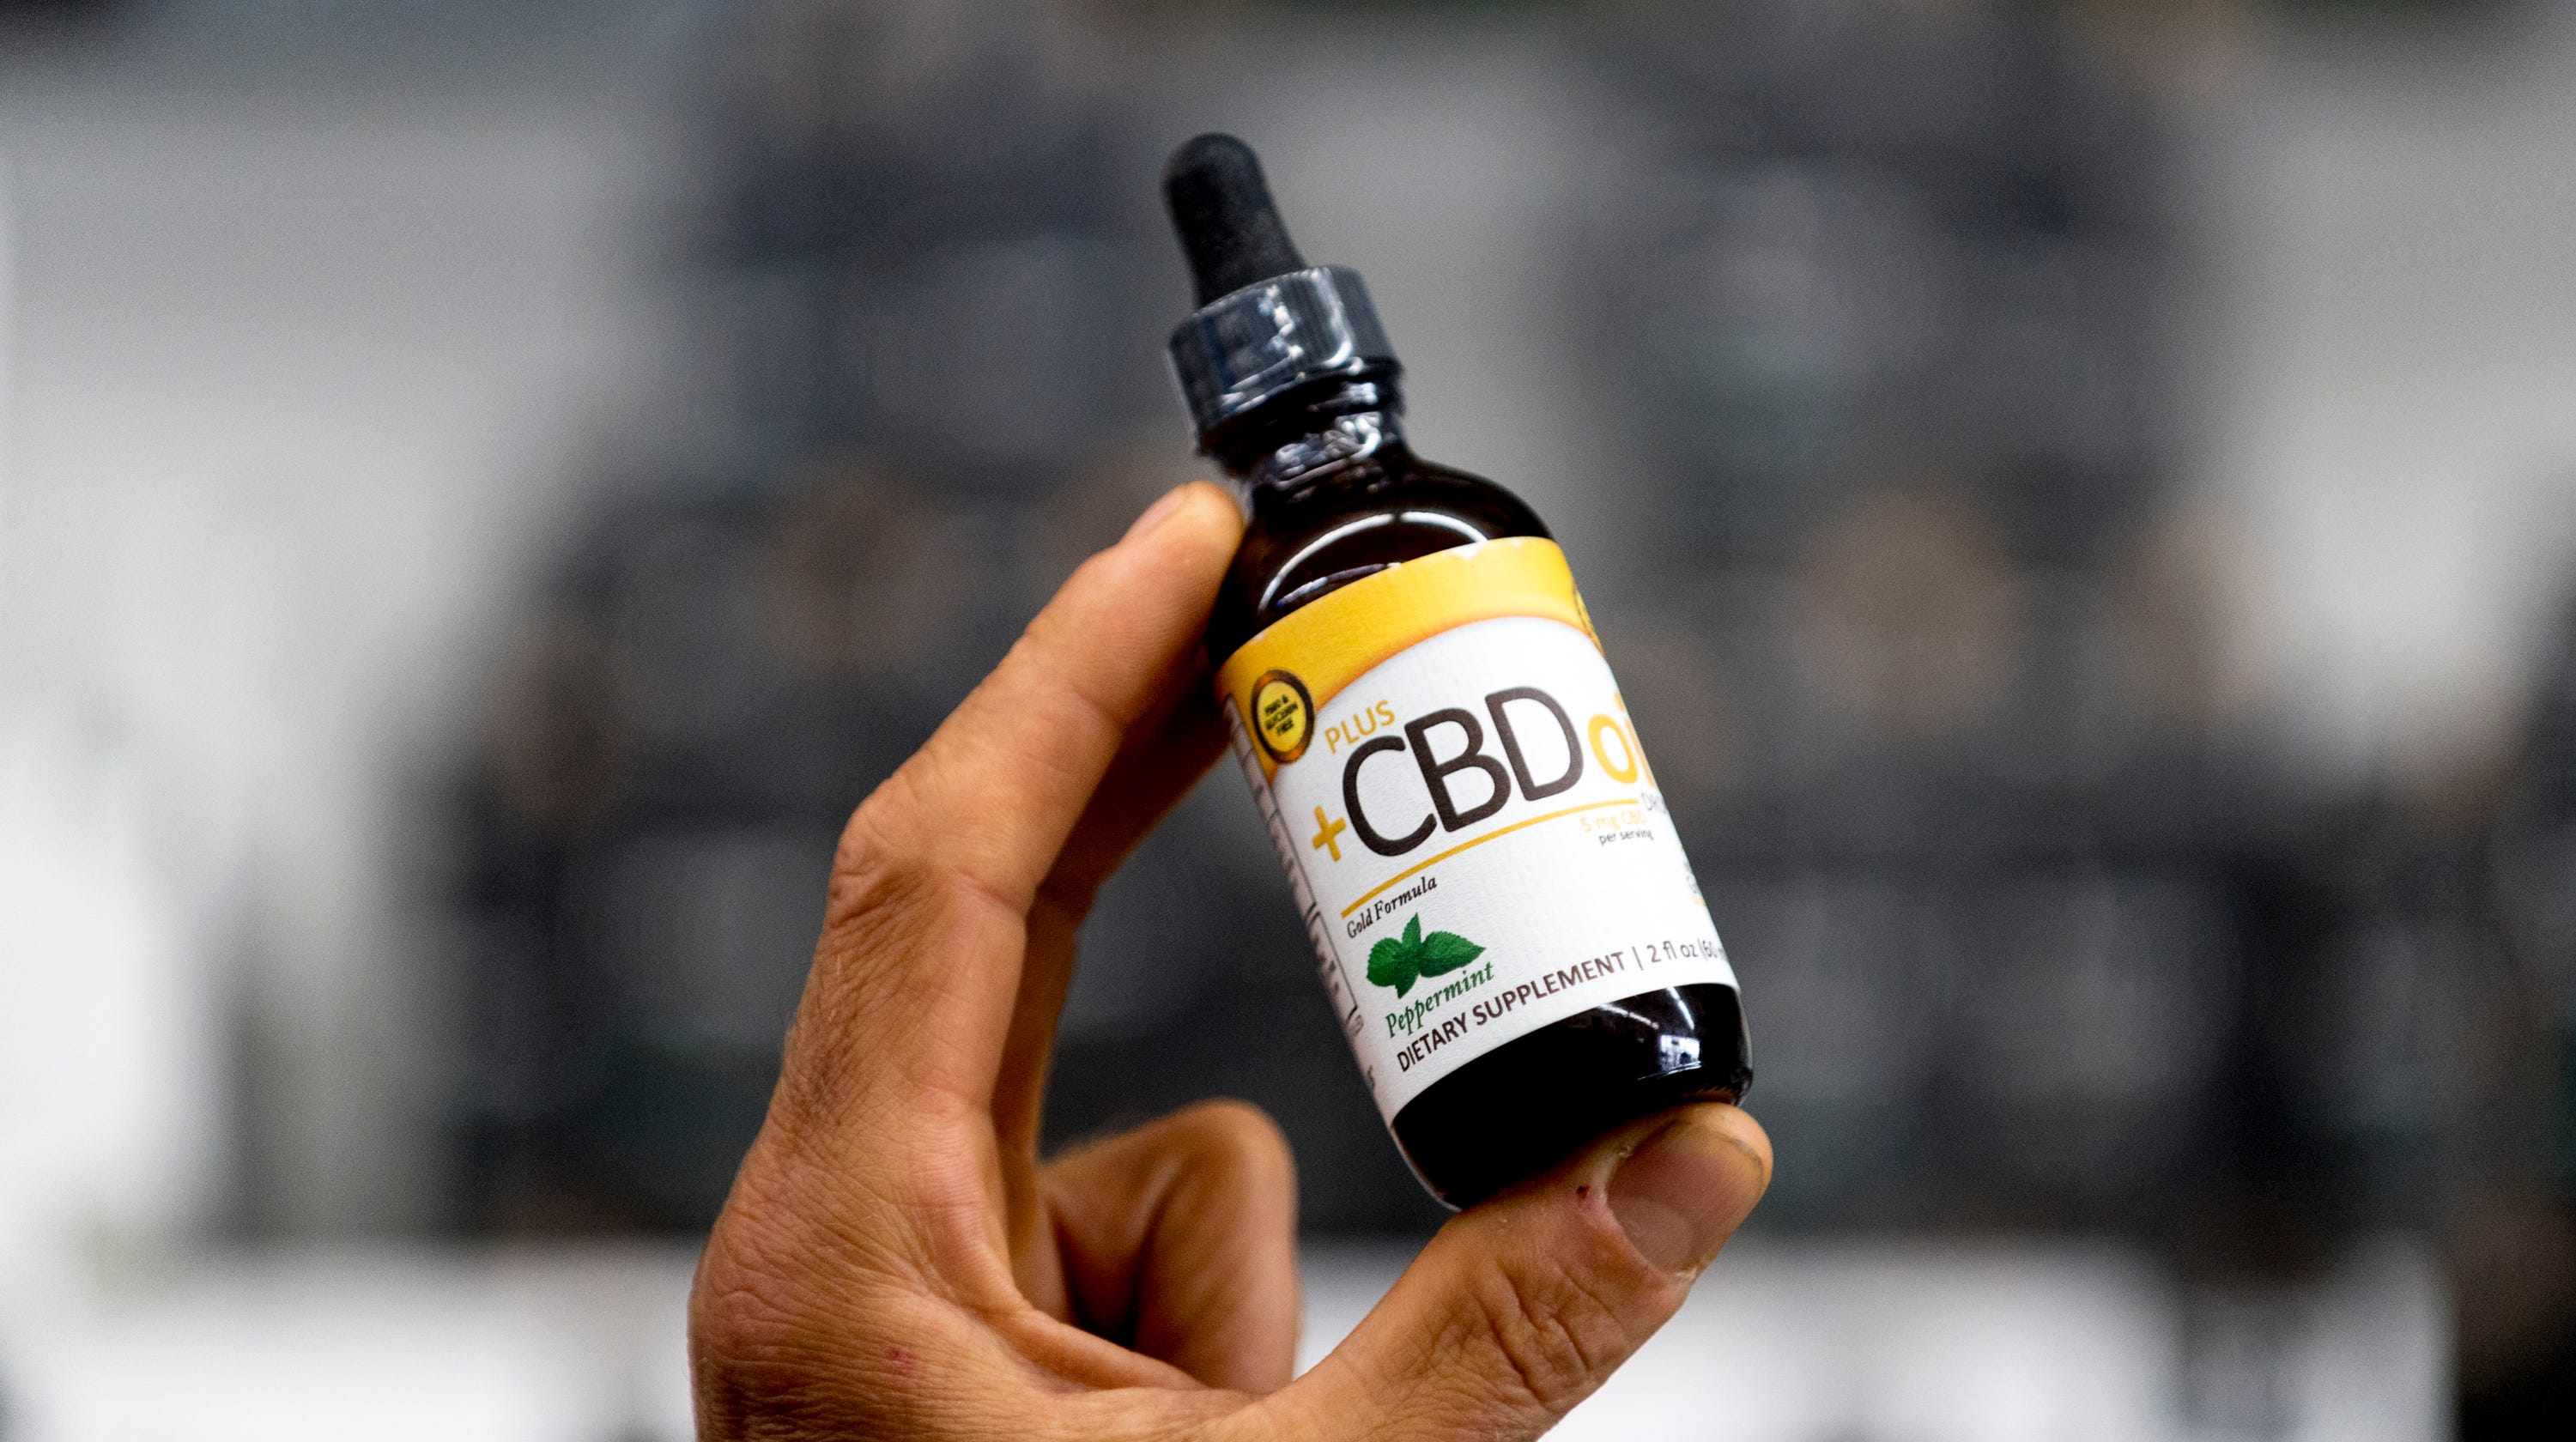 State Law Federal Policy Clash On Cbd Oil Y 12 Users Can Be Fired Eye Care Softgel Green World